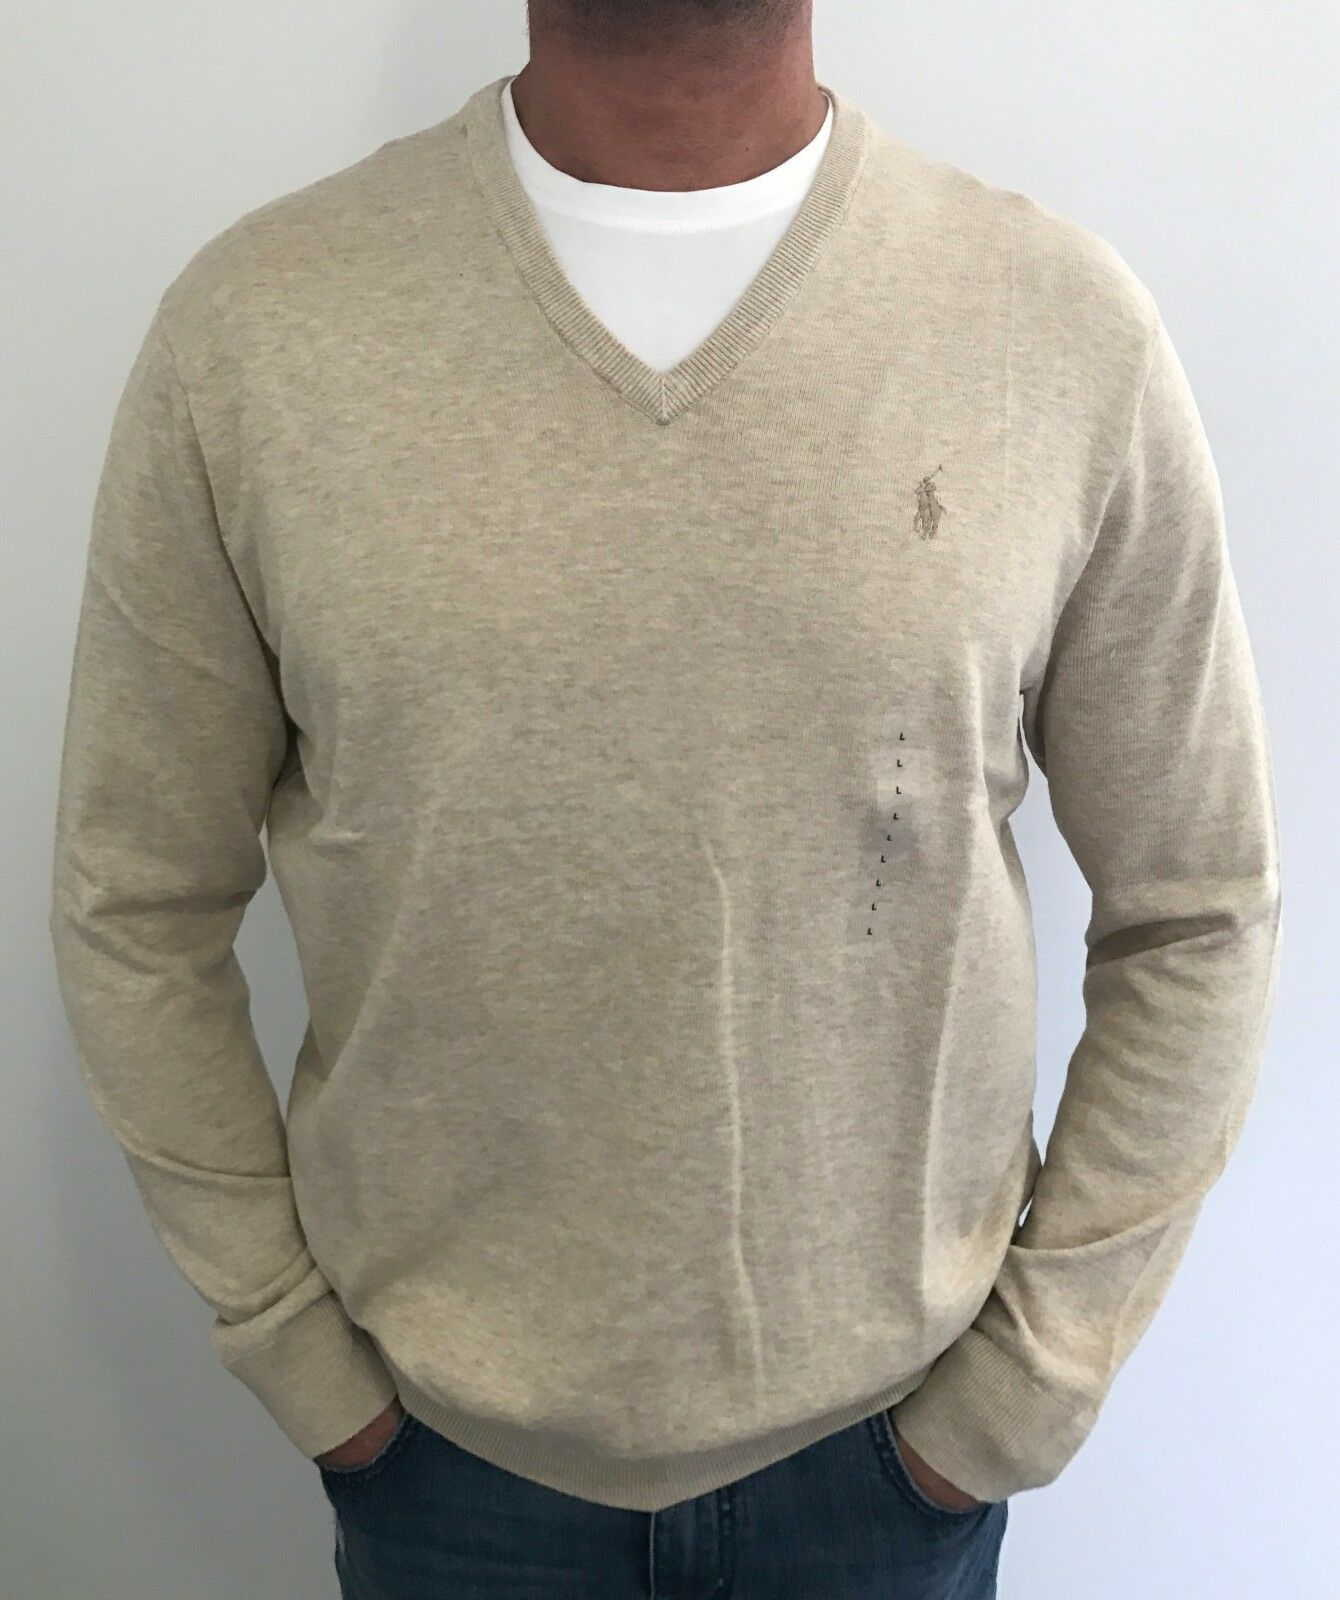 100% AUTHENTIC  Herren POLO RALPH LAUREN  PIMA COTTON KNIT SWEATER / JUMPER BEIGE L